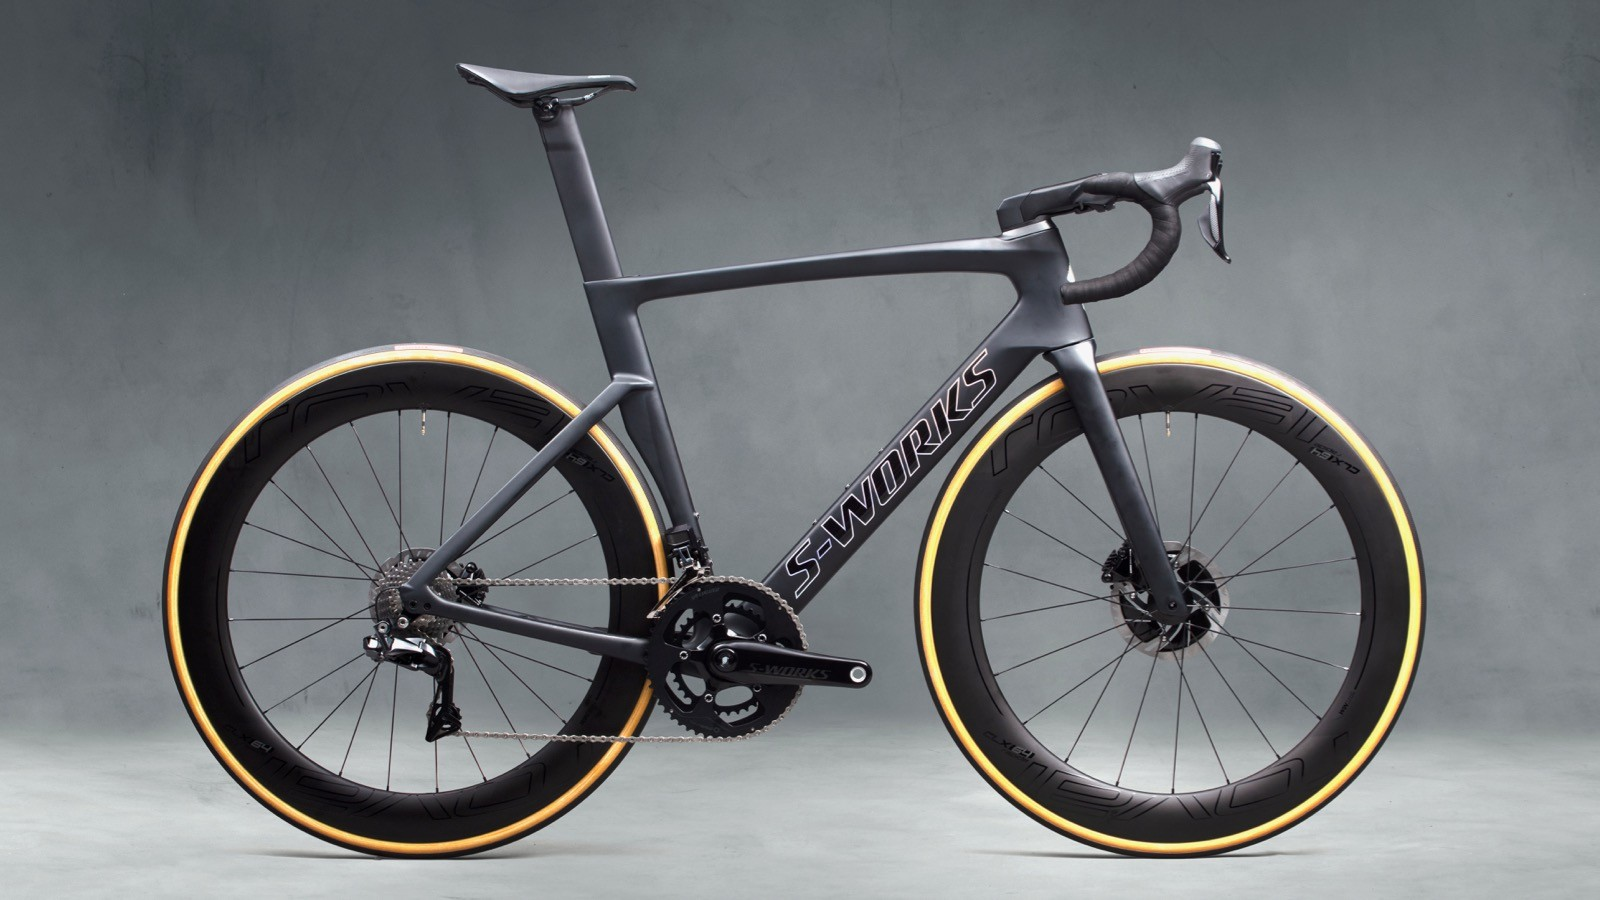 6e9c9e7f6c5 Specialized S-Works Venge: lighter, faster and all-in on Shimano ...